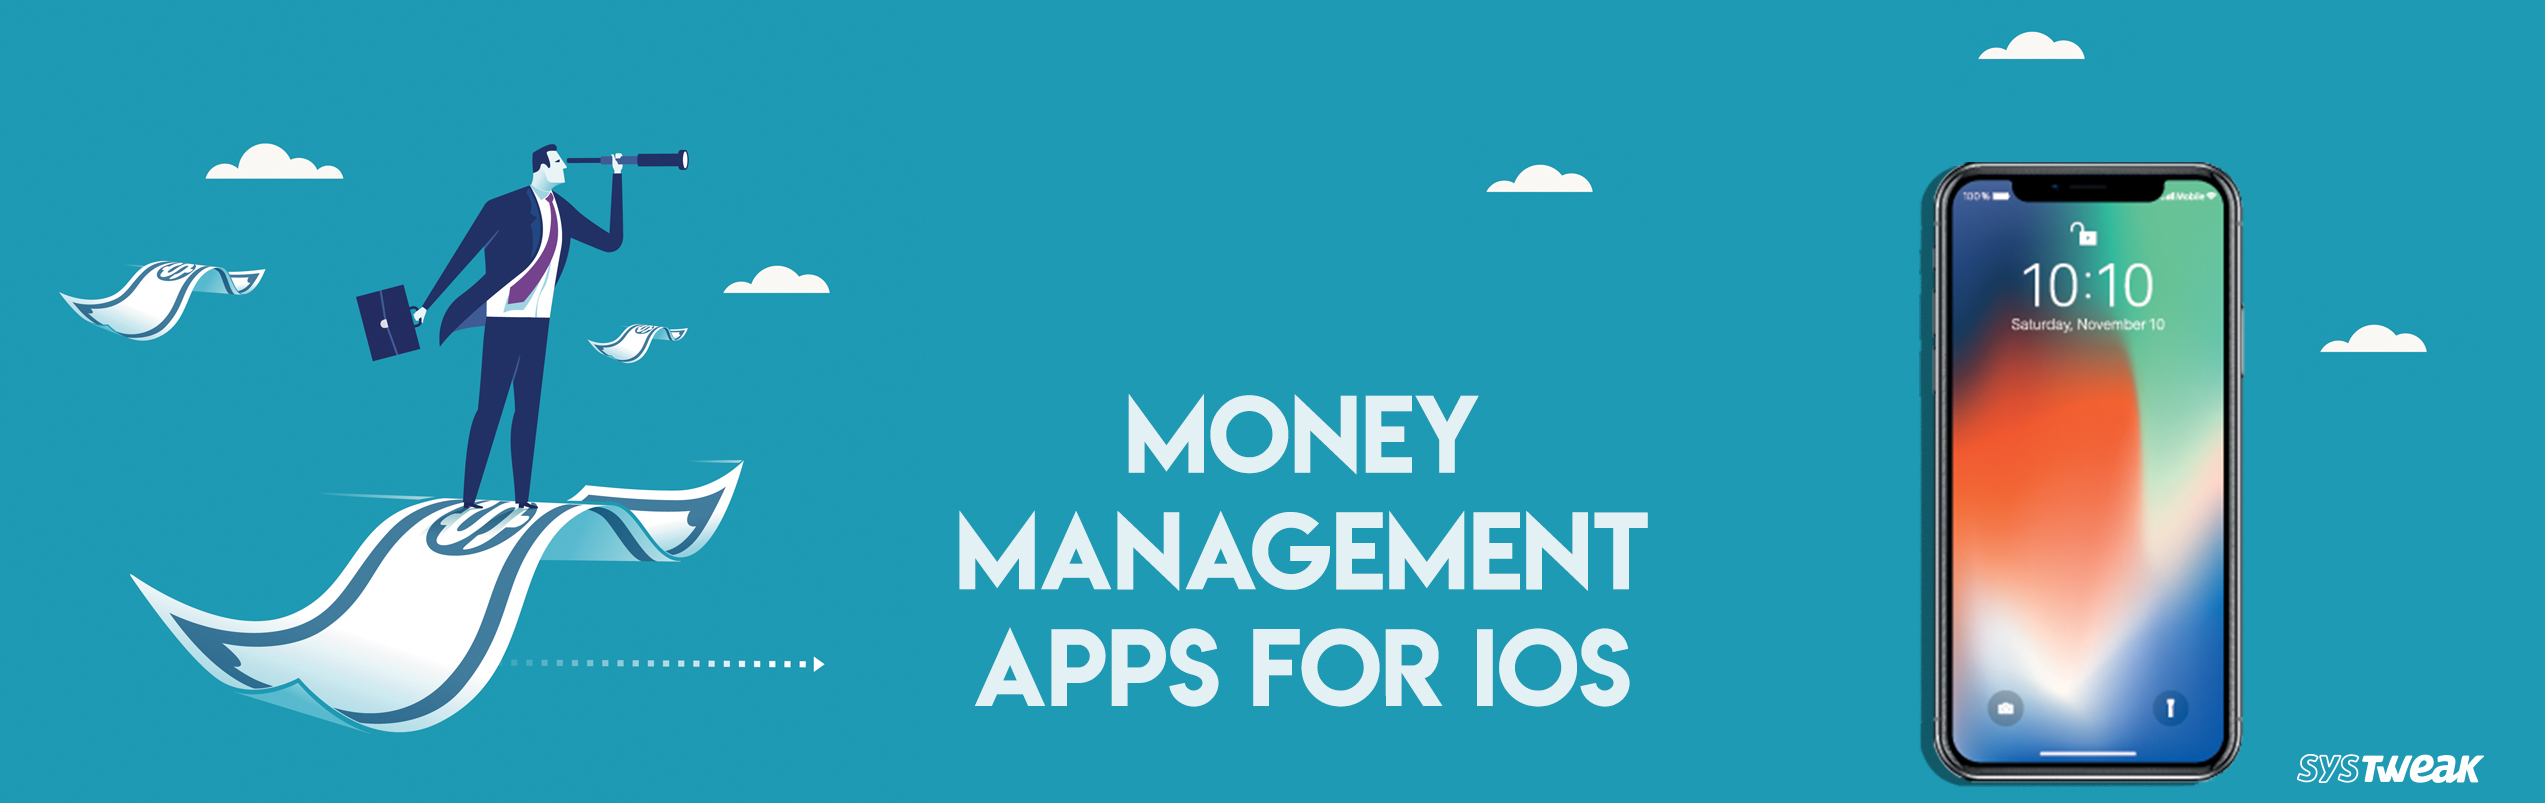 Best Money Management Apps For iOS That Are Fun To Use